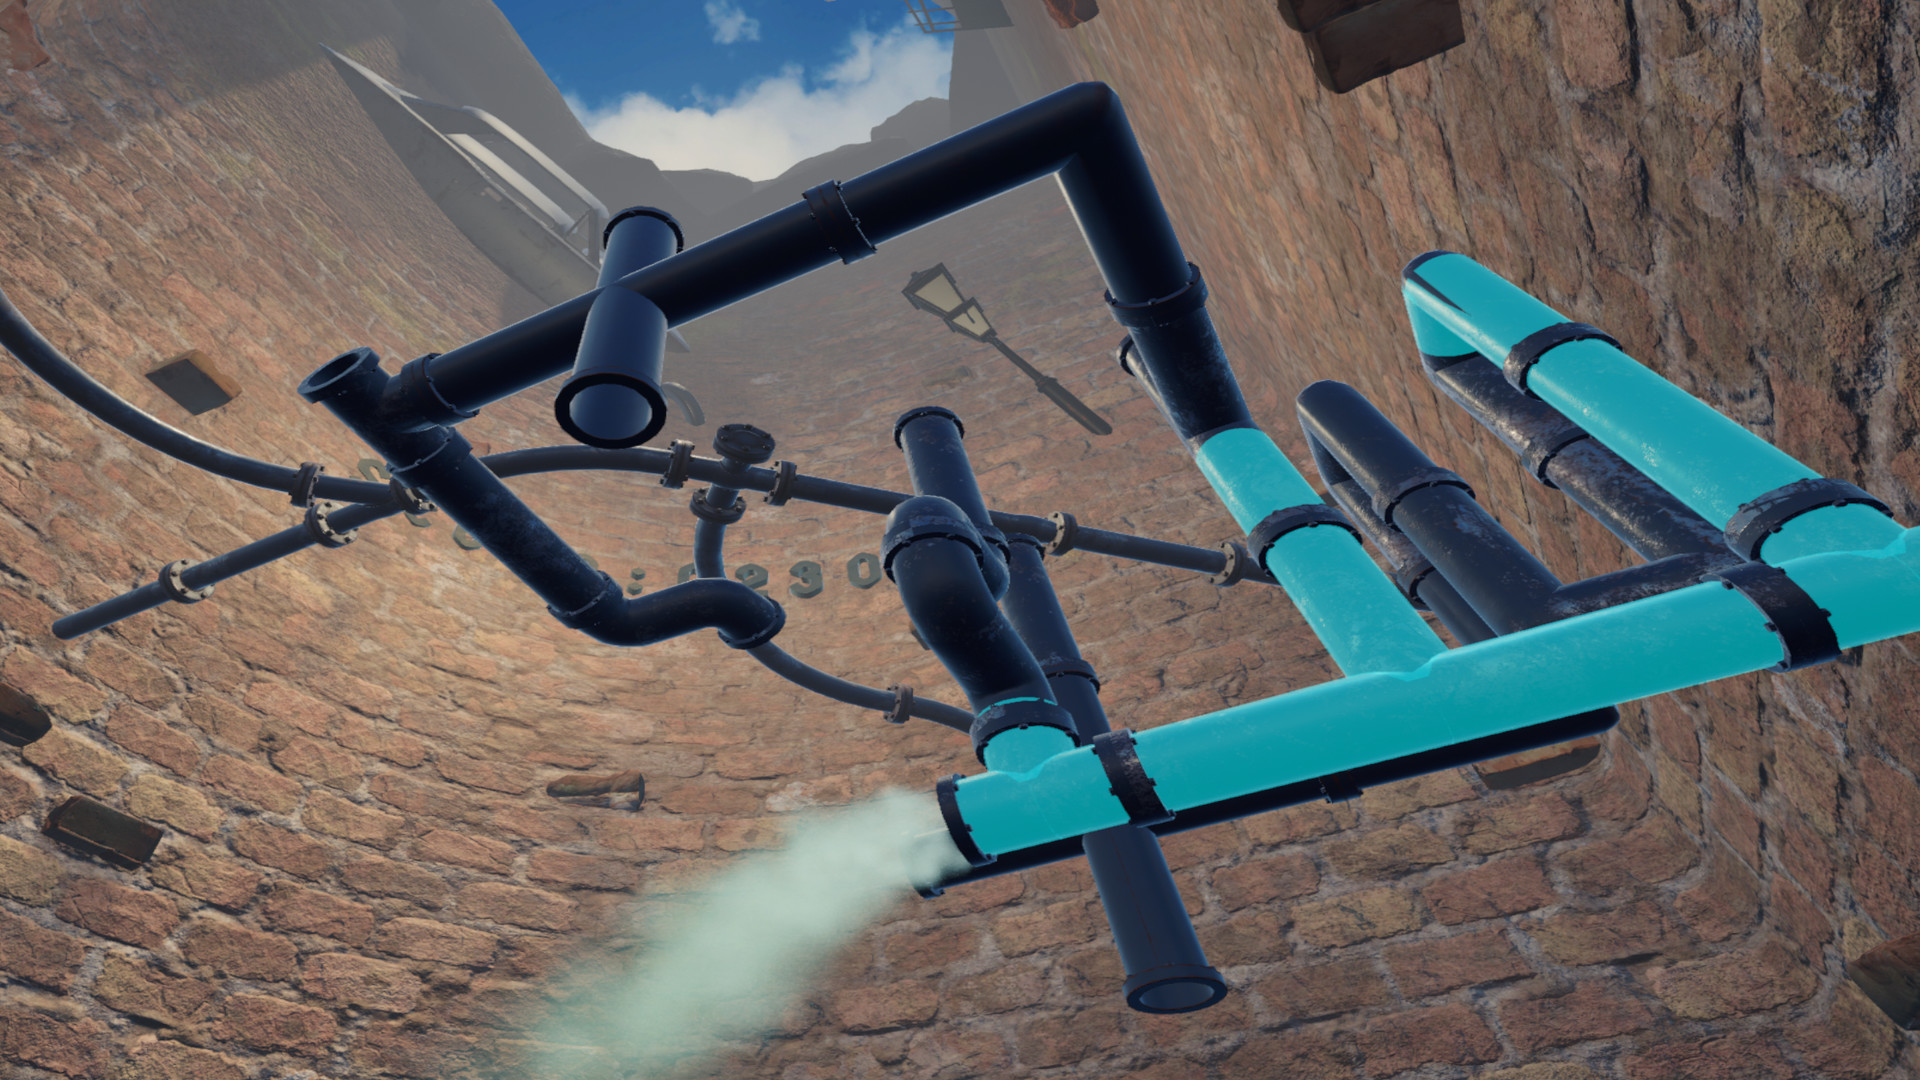 Pipe Dreamin' VR: The Big Easy Free Download